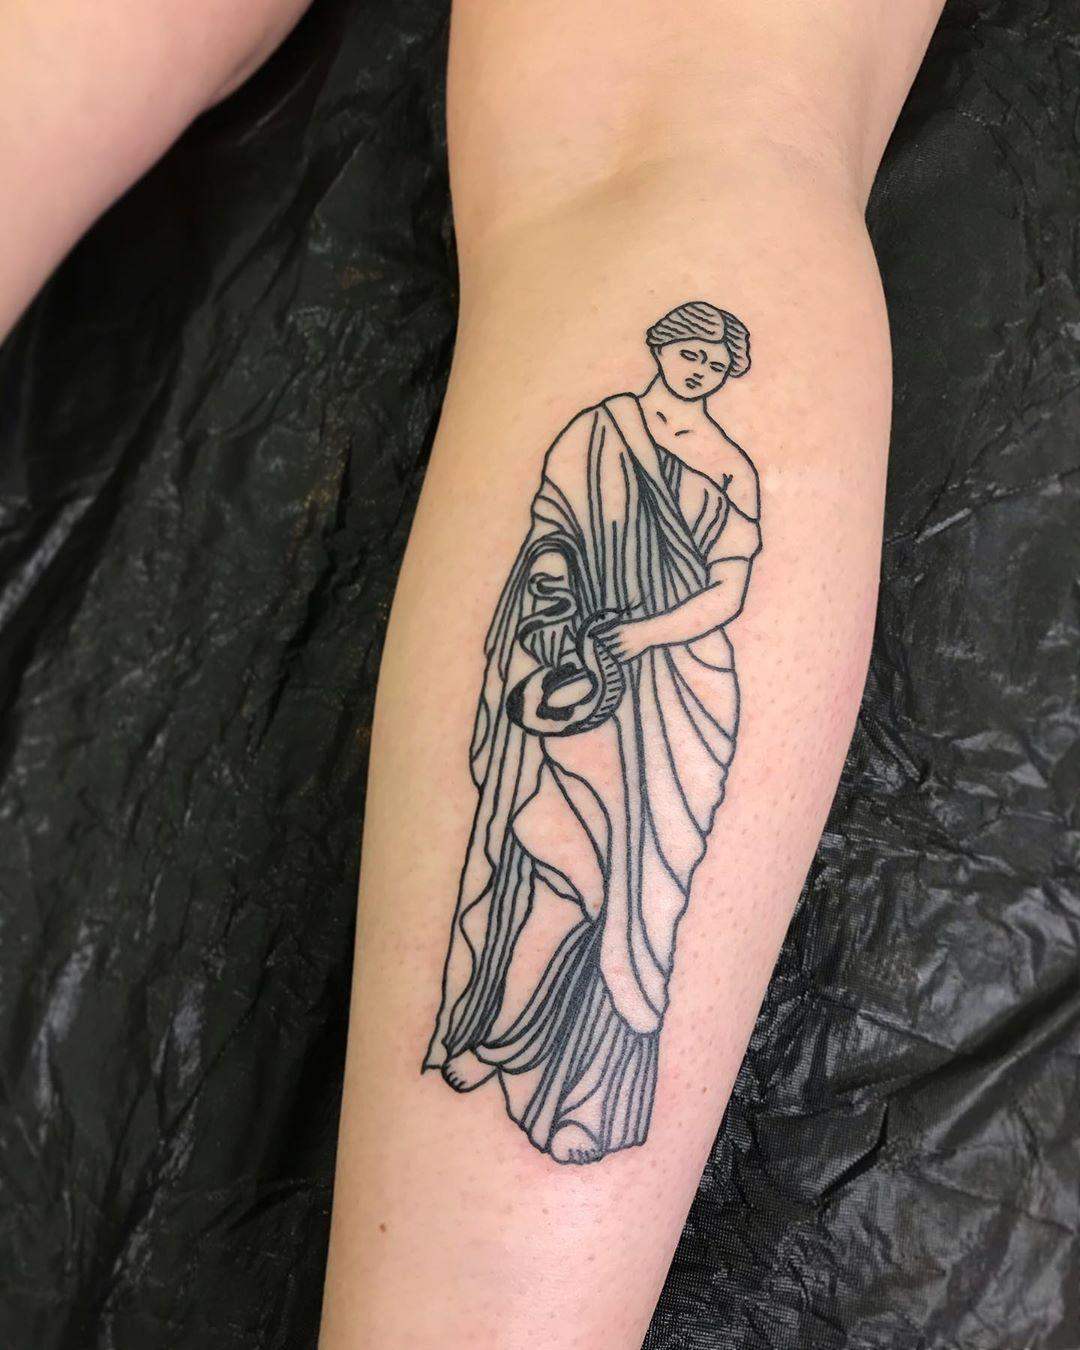 Static stoic statue by @lonewolftattoo